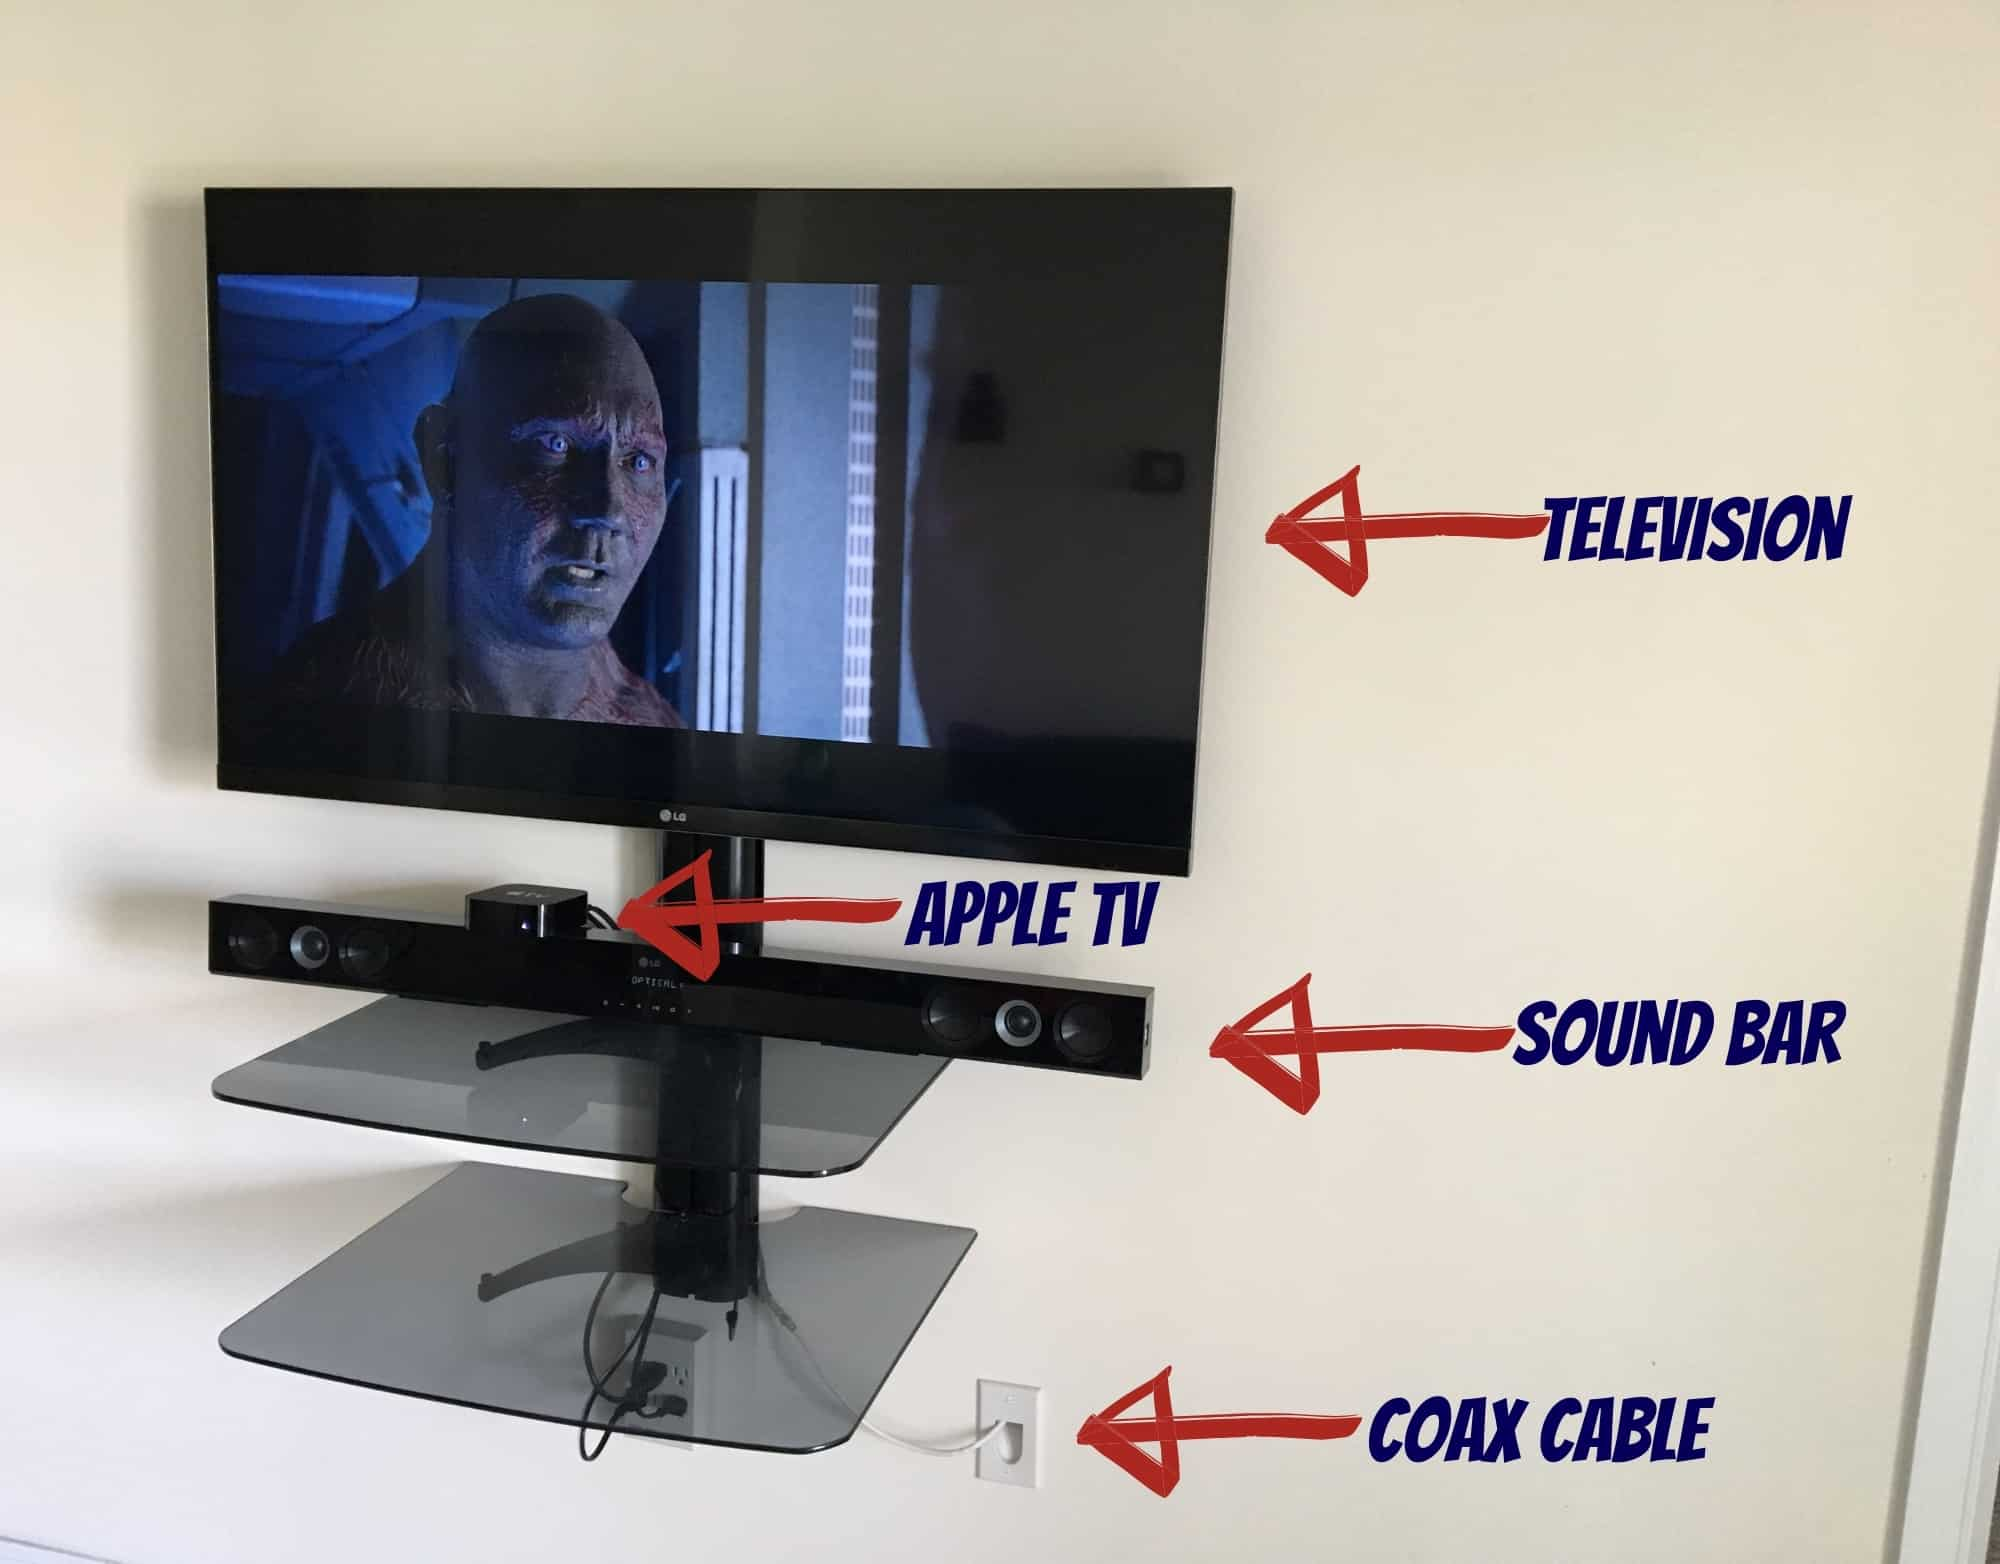 Free cable television setup: smart television, Apple TV 4k, and sound bar.